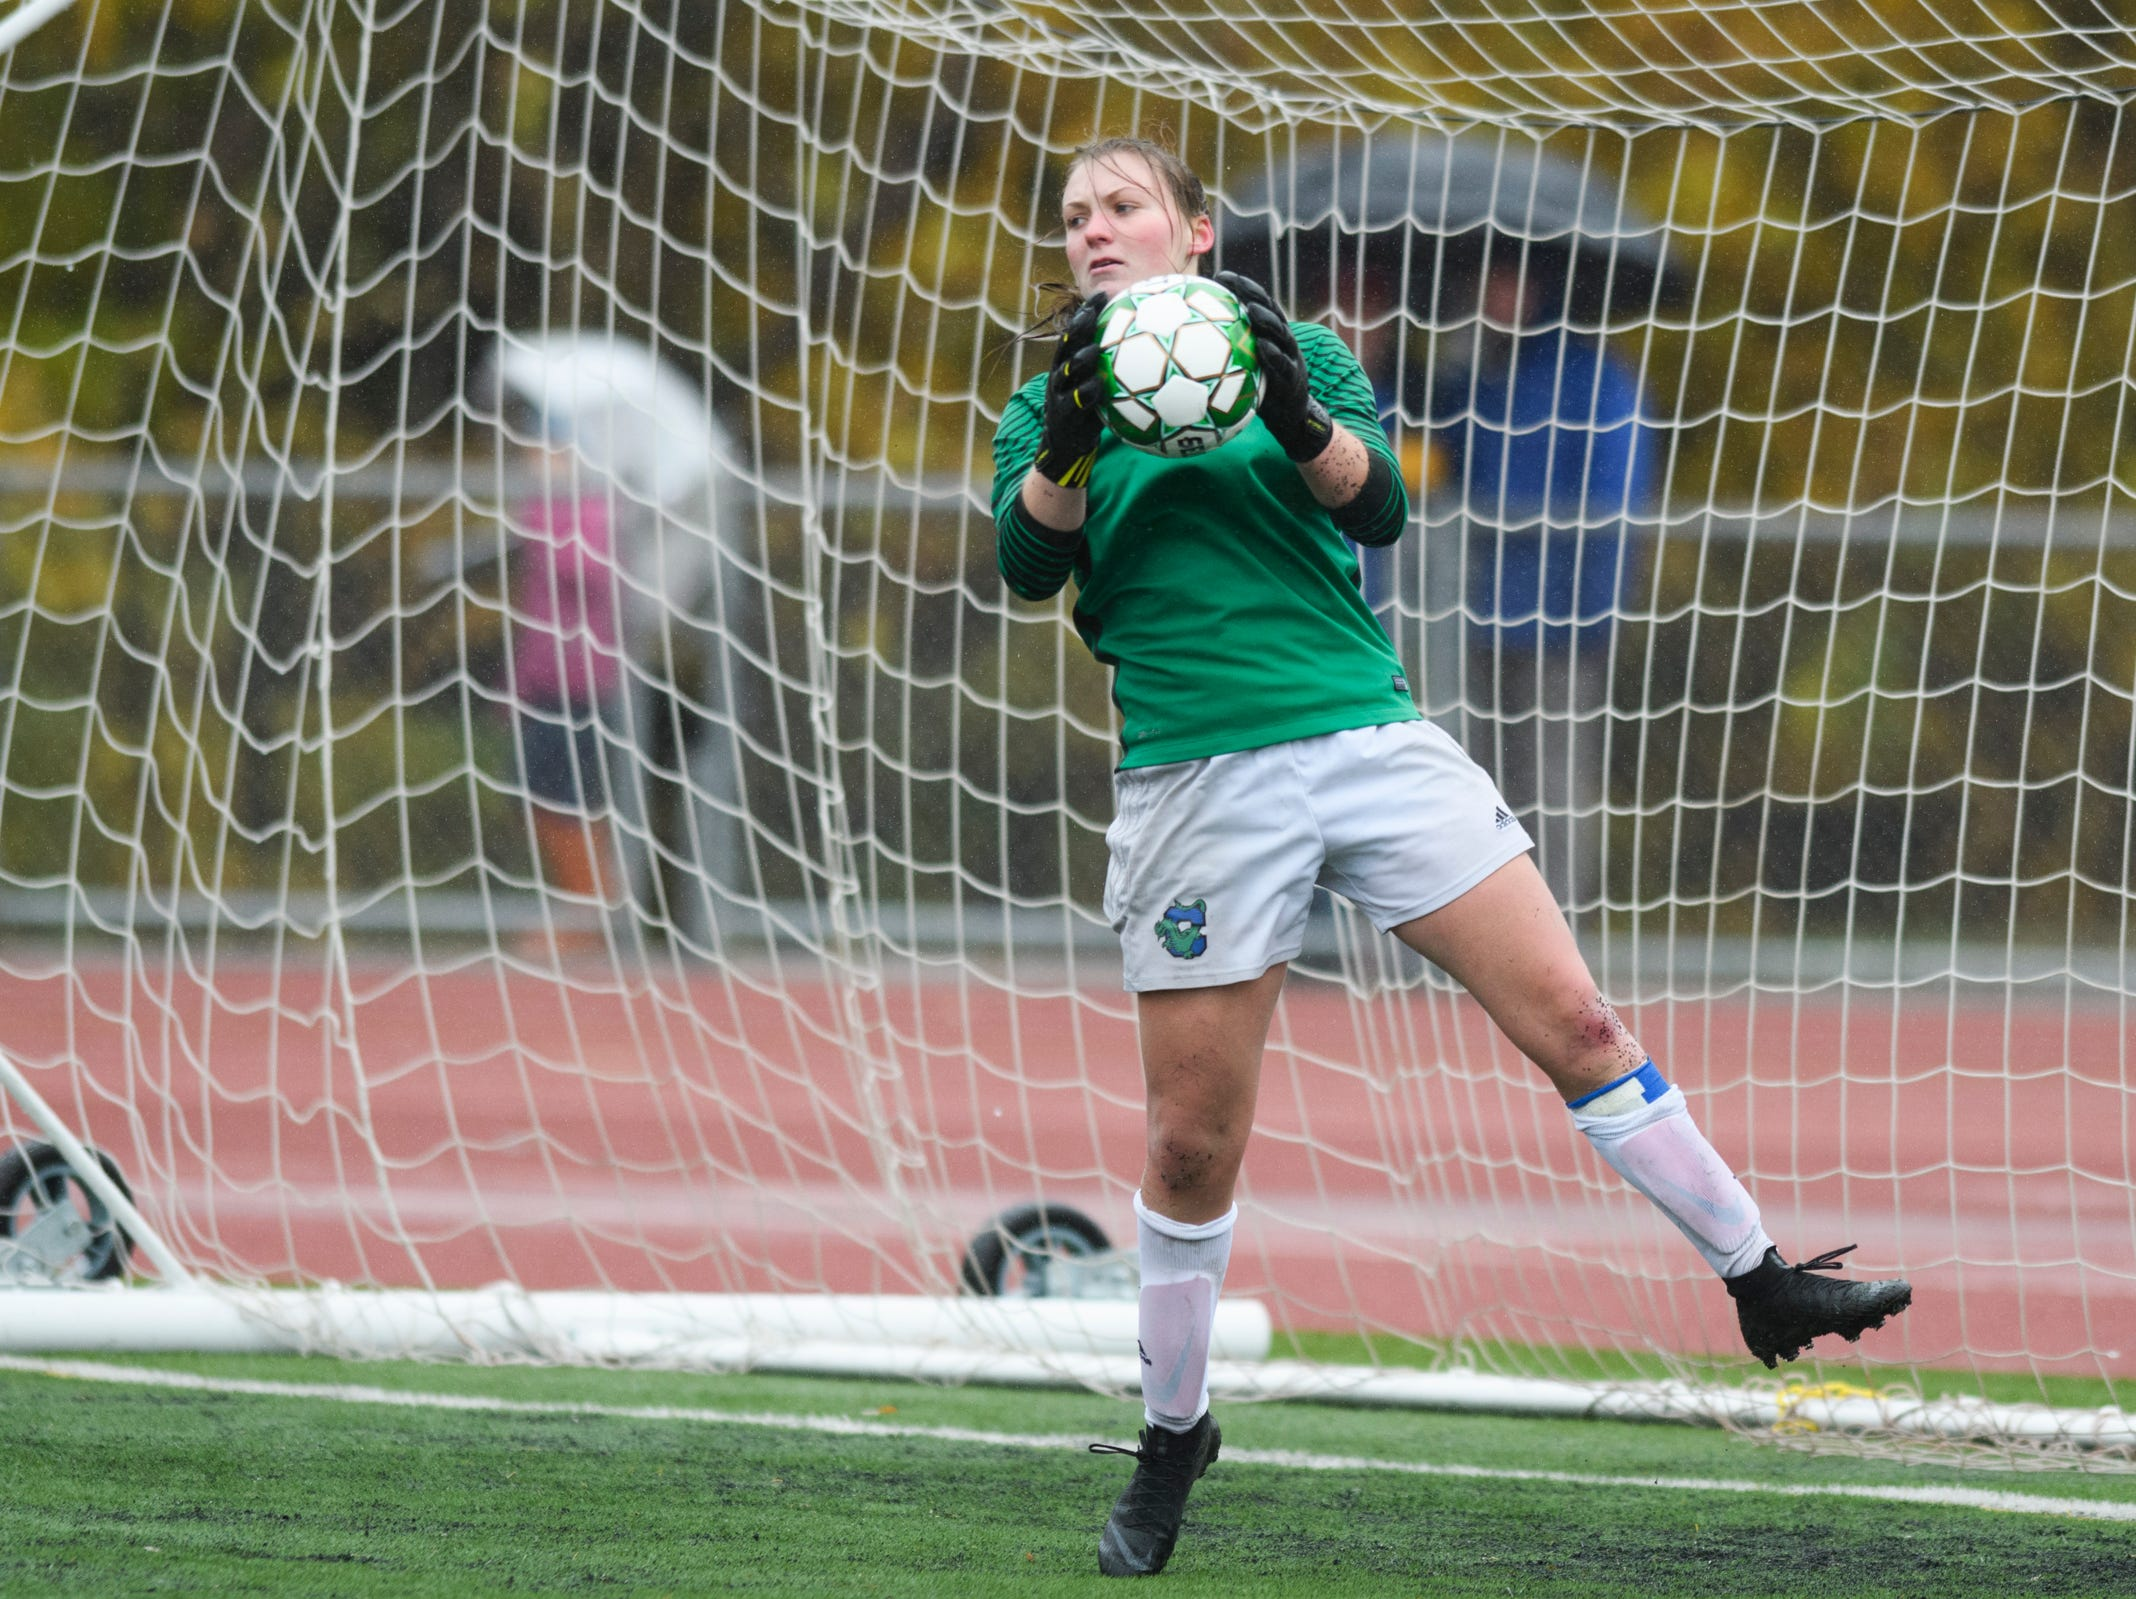 Colchester goalie Olivia Moore makes a save during the division I girls soccer championship game between the Colchester Lakers and the Champlain Valley Union Redhawks at Buck Hard Field on Saturday morning November 3, 2018 in Burlington.